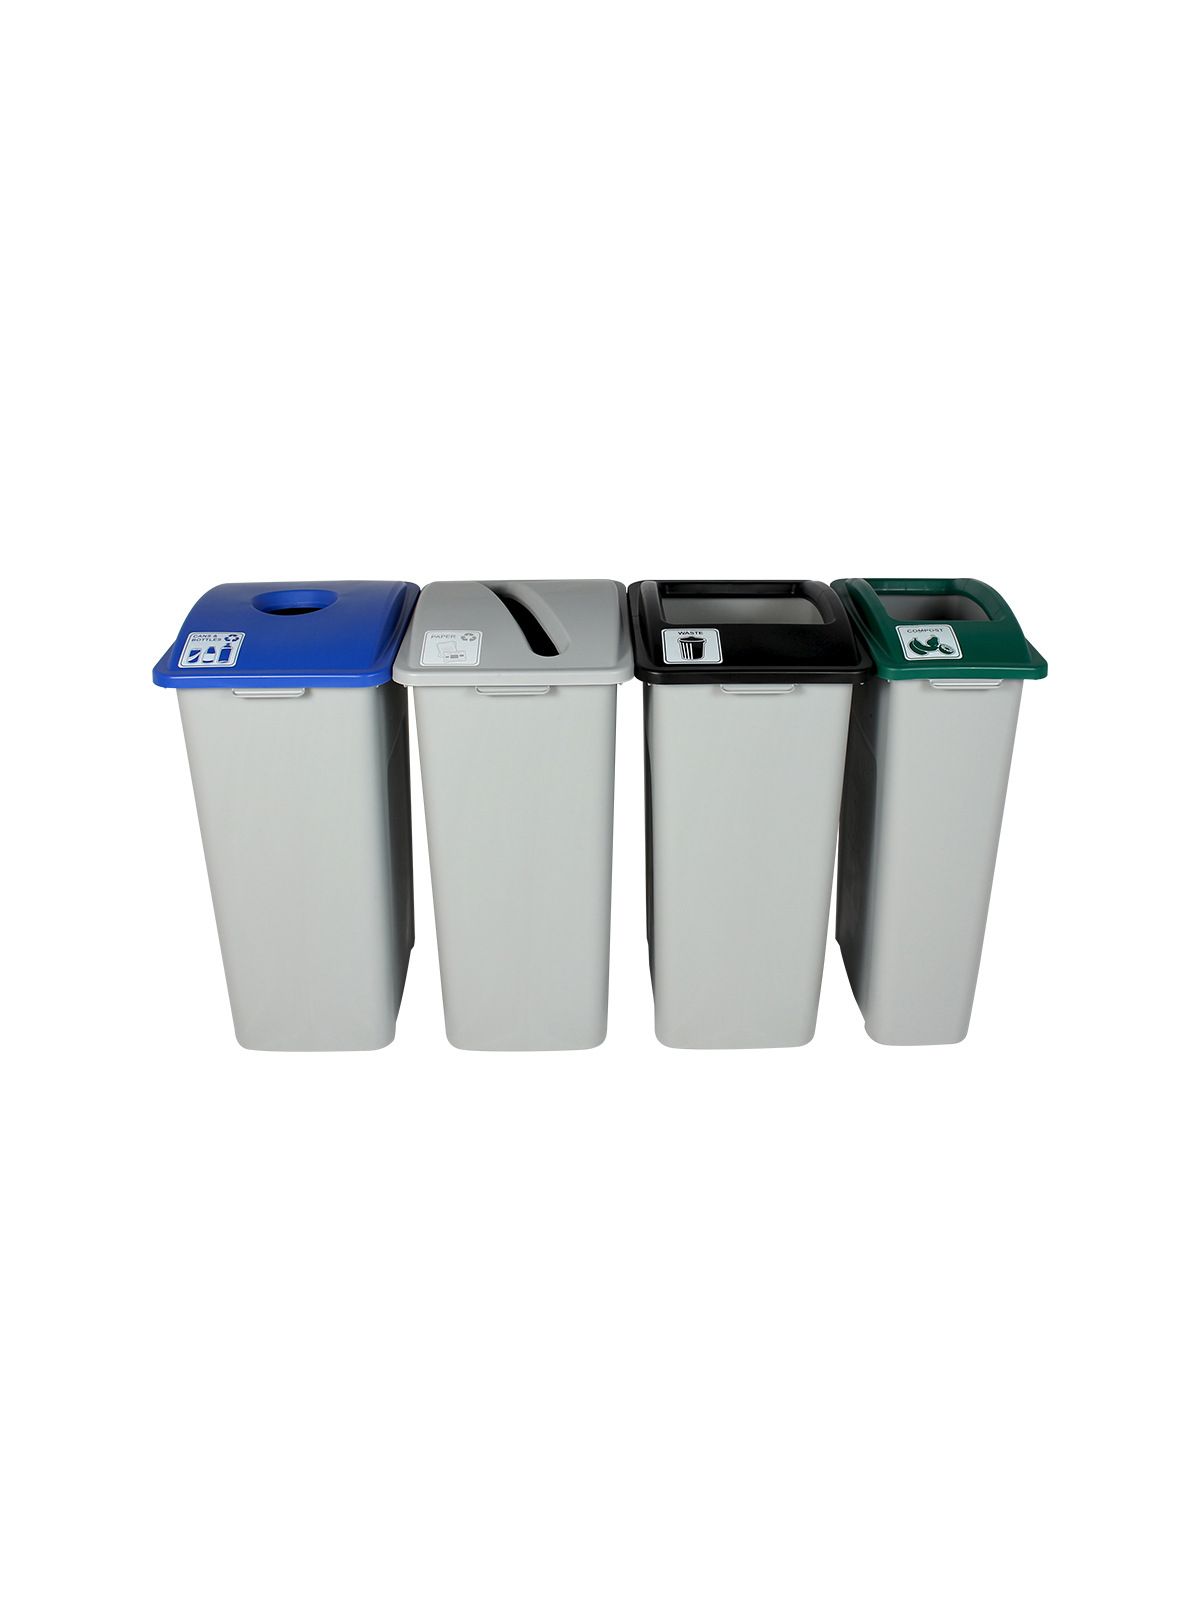 WASTE WATCHER XL - Quad - Cans & Bottles-Paper-Compost-Waste - Circle-Slot-Full - Grey-Blue-Grey-Green-Black